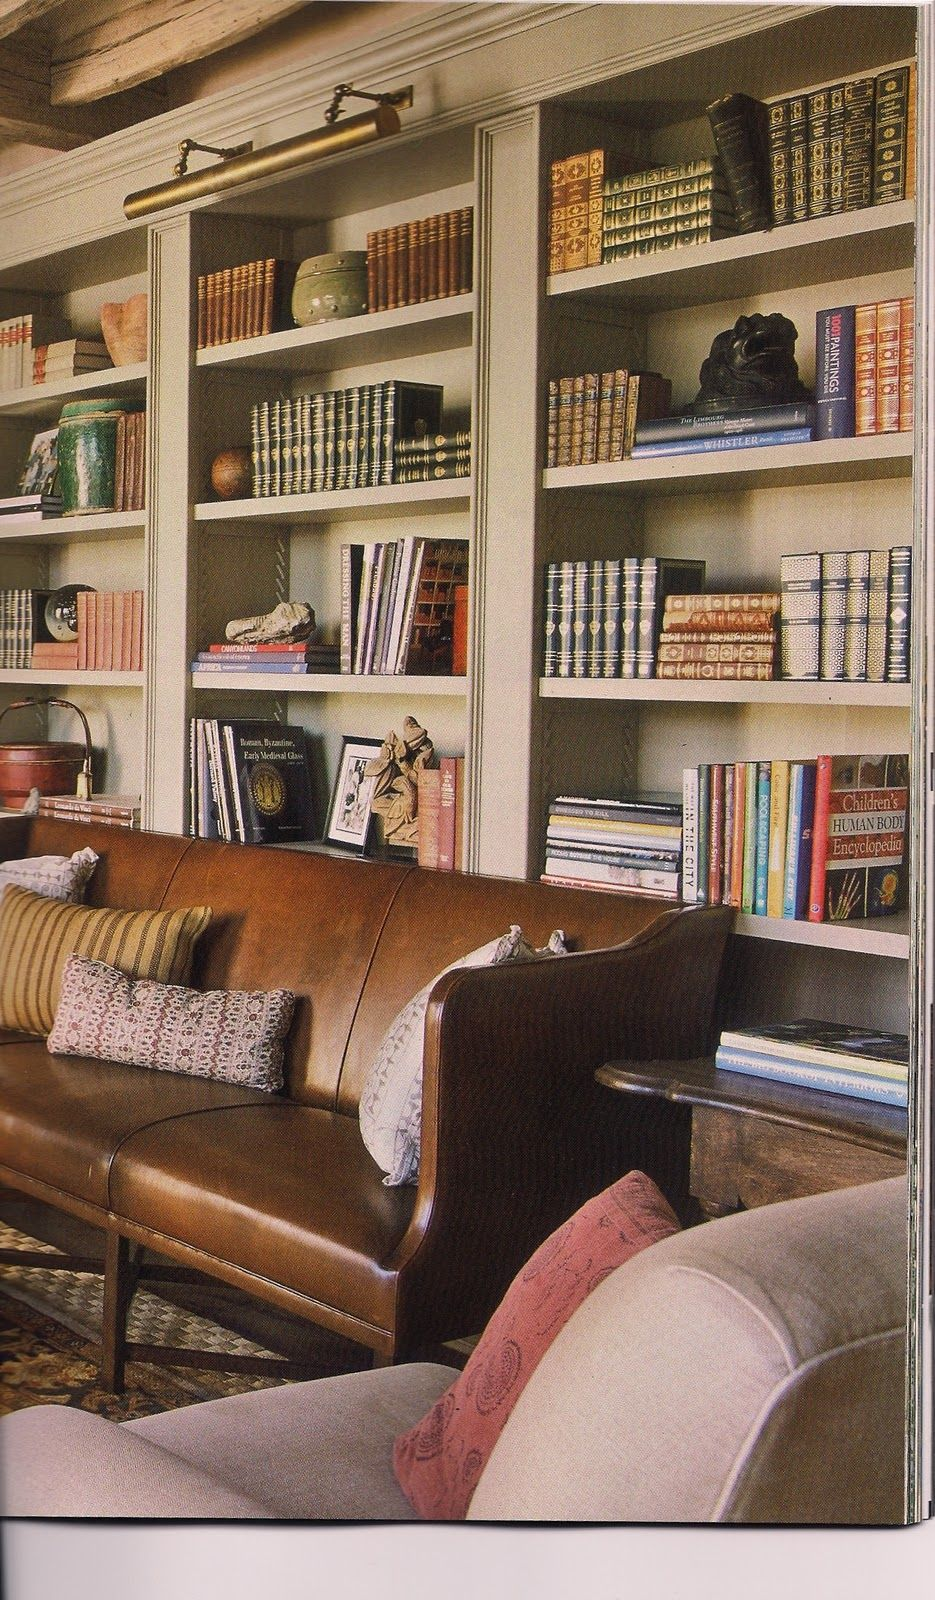 Living Room With Books: Picture Light..lovely Library With Artfully Arranged Books